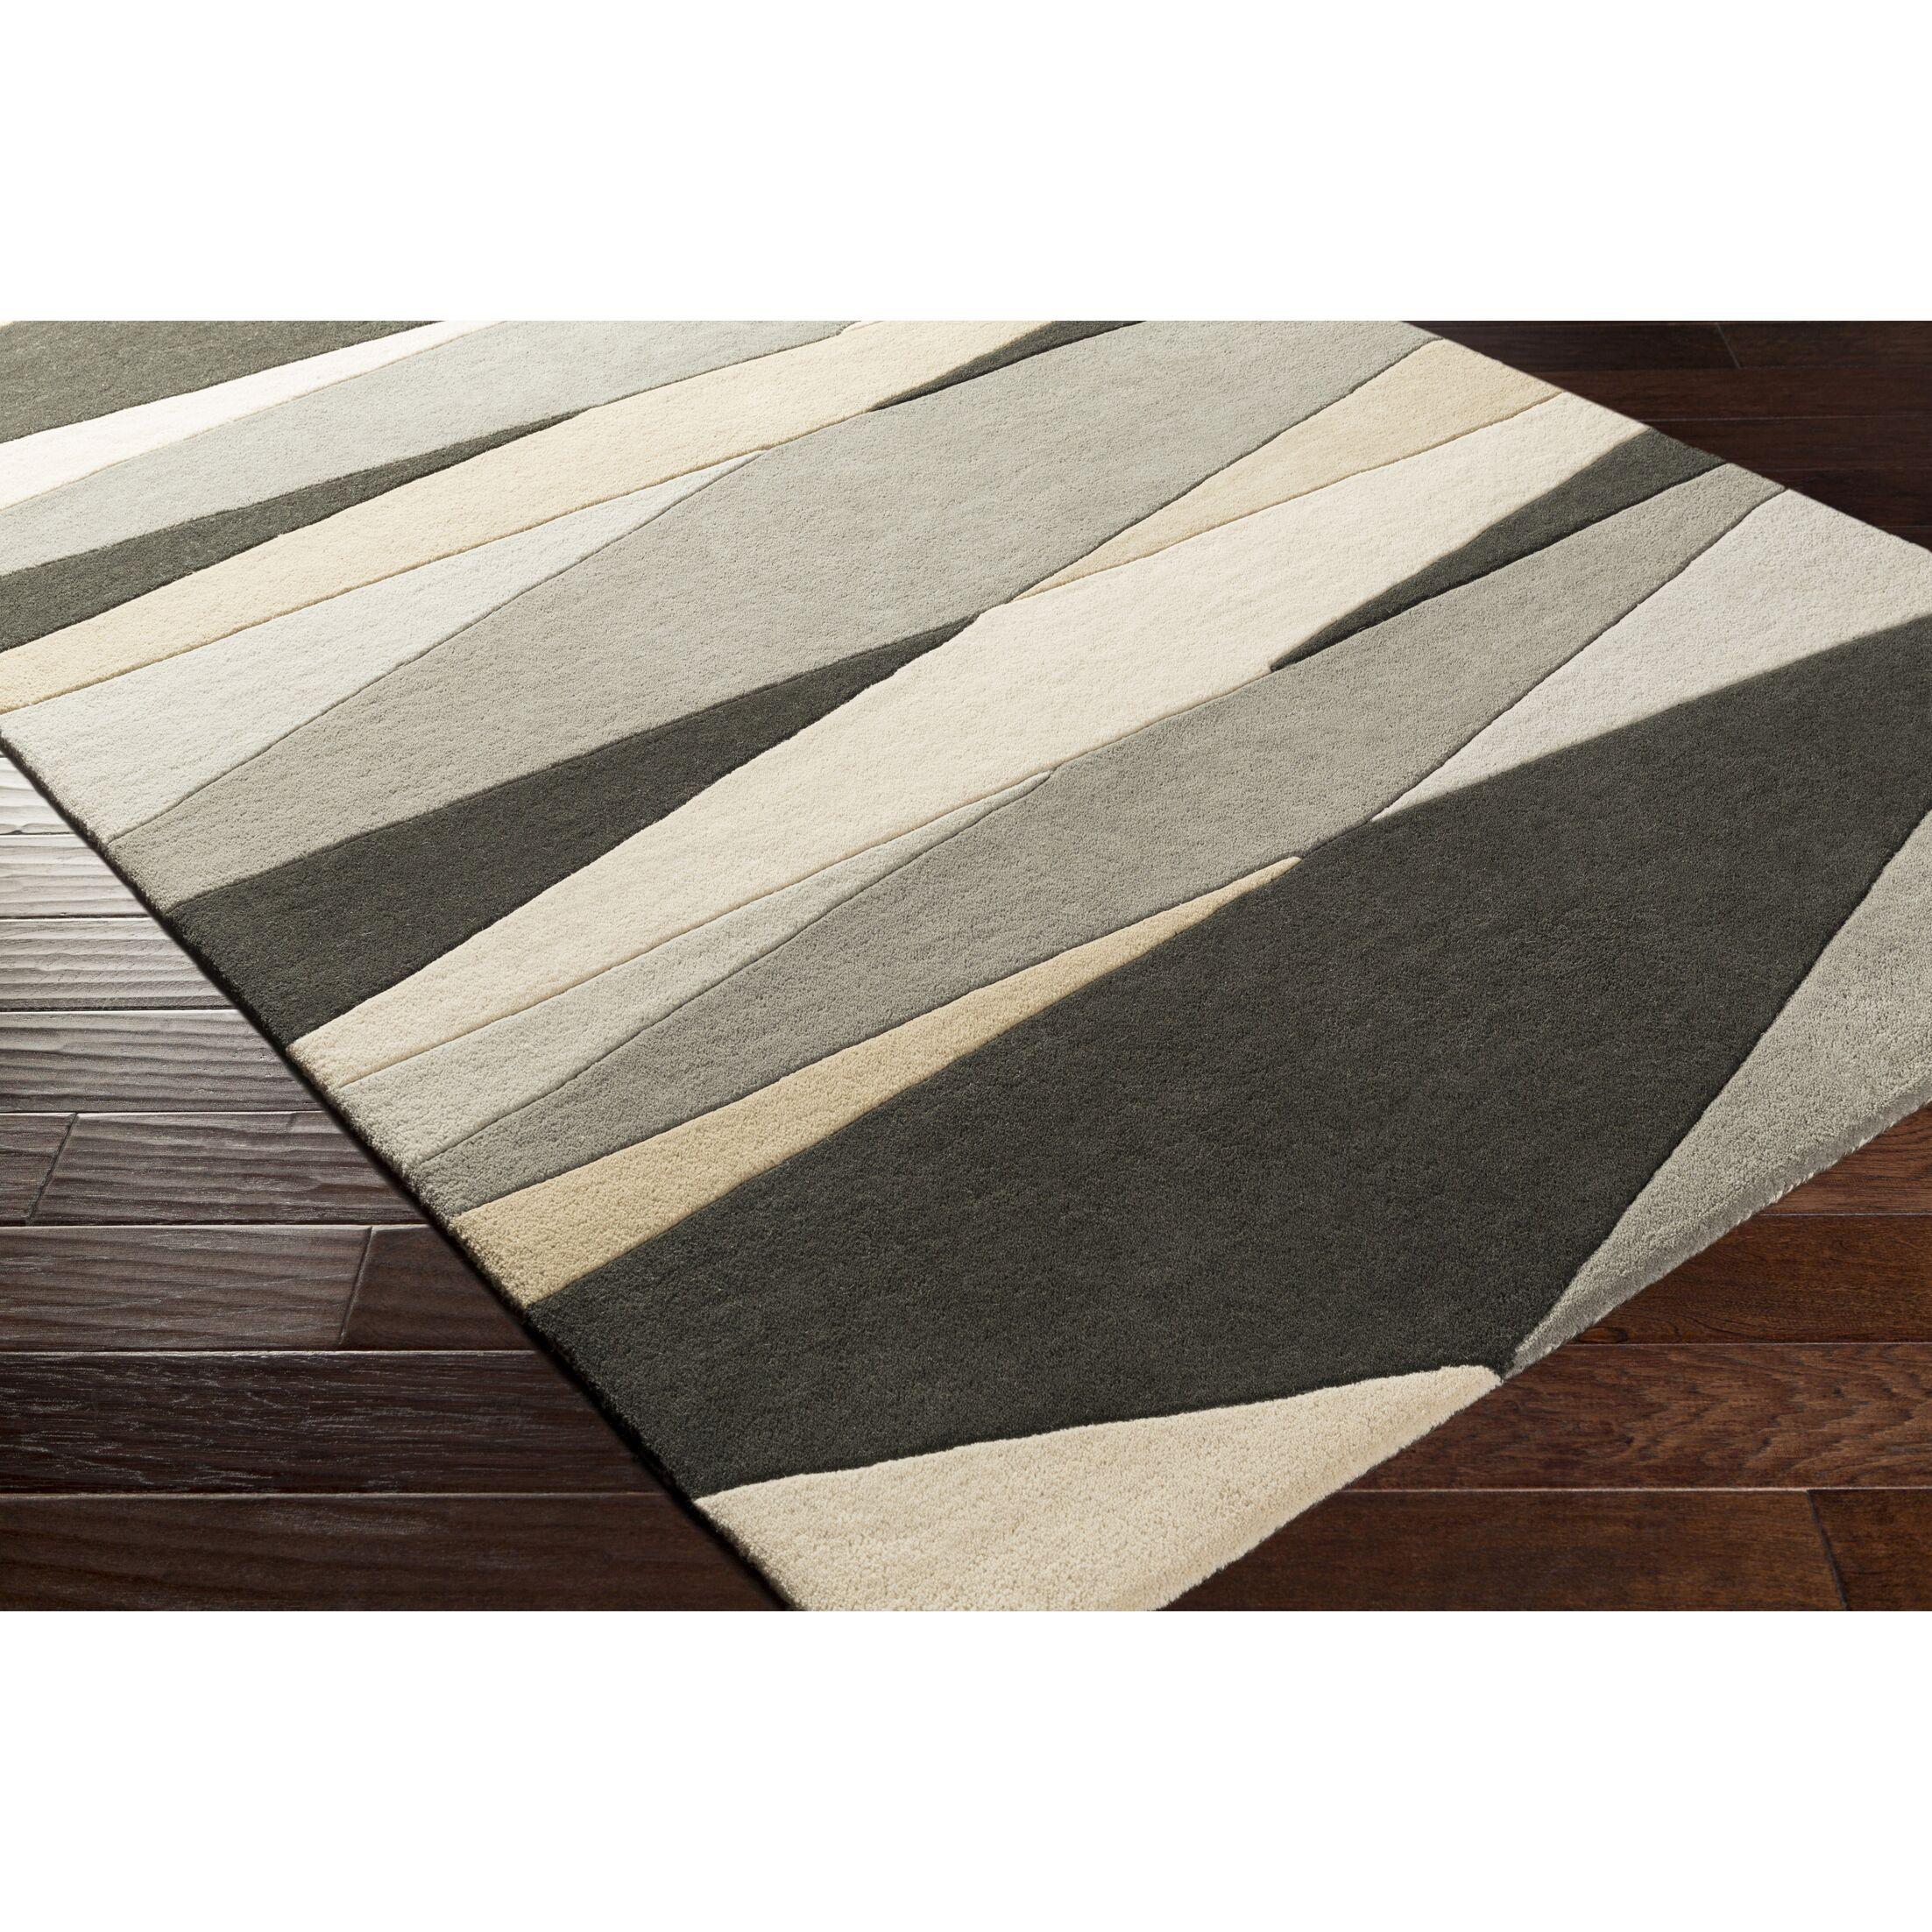 Dewald Hand-Tufted Gray/Beige Area Rug Rug Size: Rectangle 6' x 9'